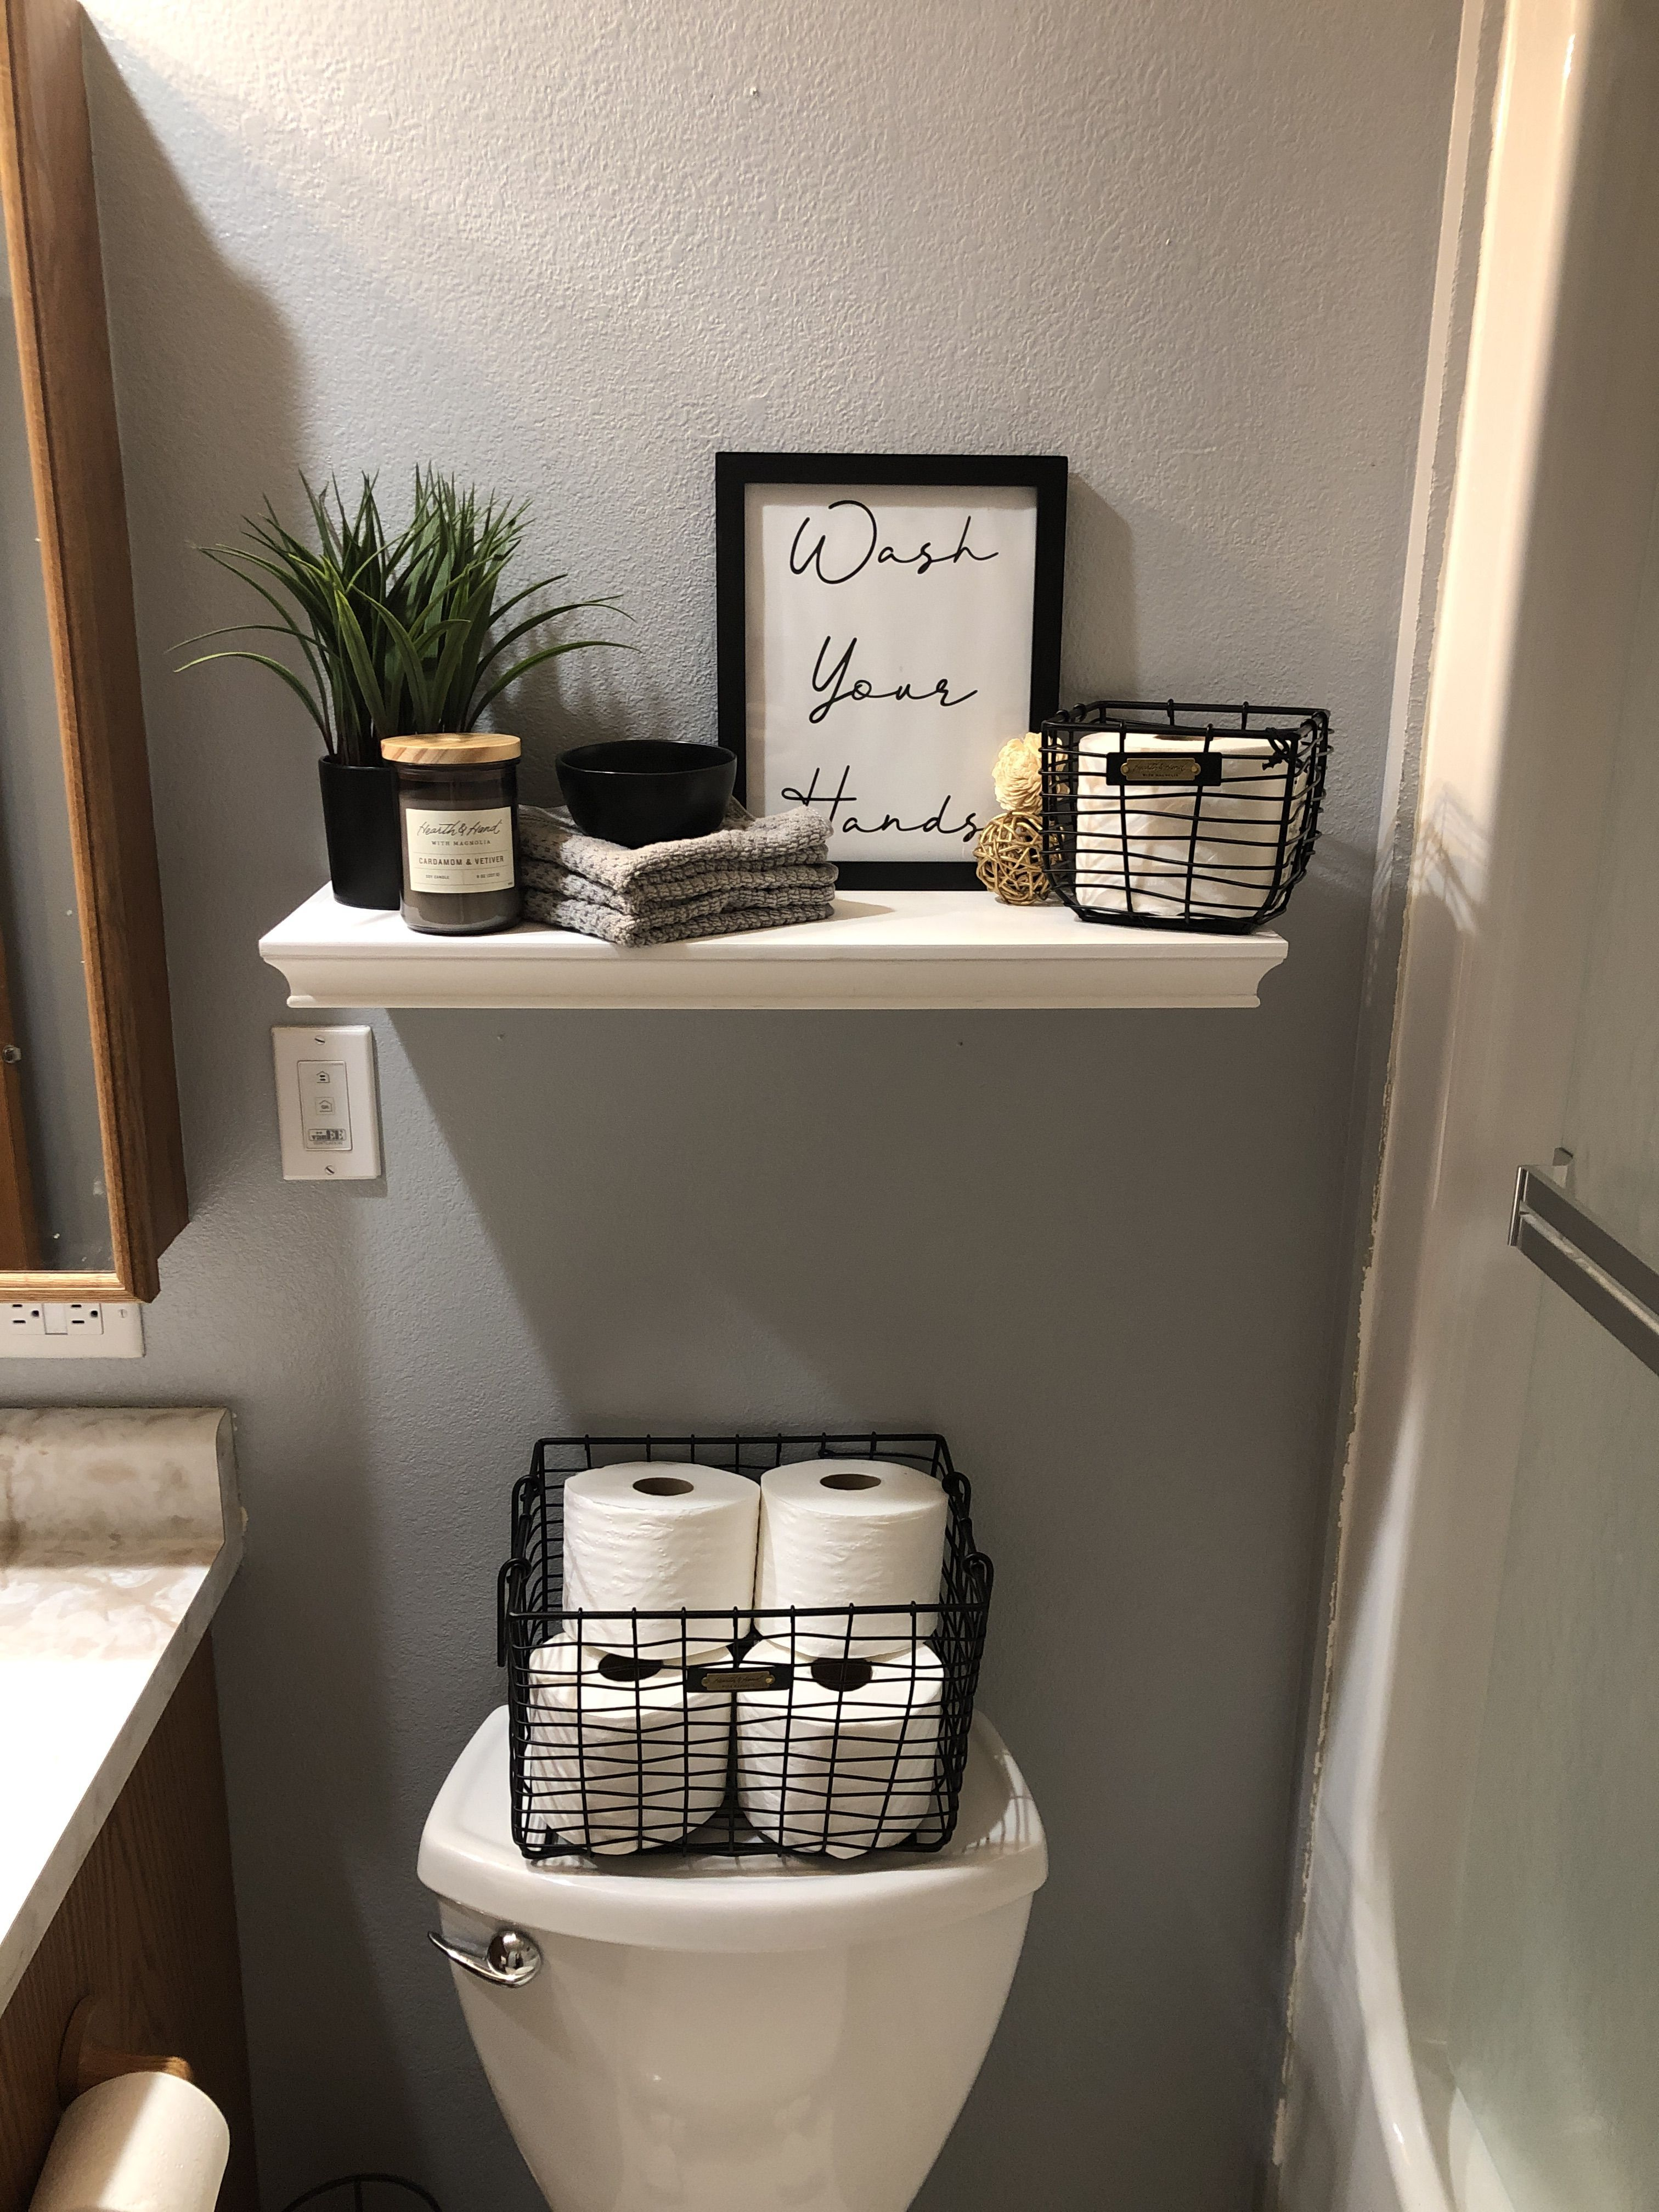 All Decor Including Shelf Baskets Frame Plant Wash Clothes Candle And Dish Came From Target With Gold Bathroom Decor Bathroom Decor Half Bathroom Decor Bathroom decor at target